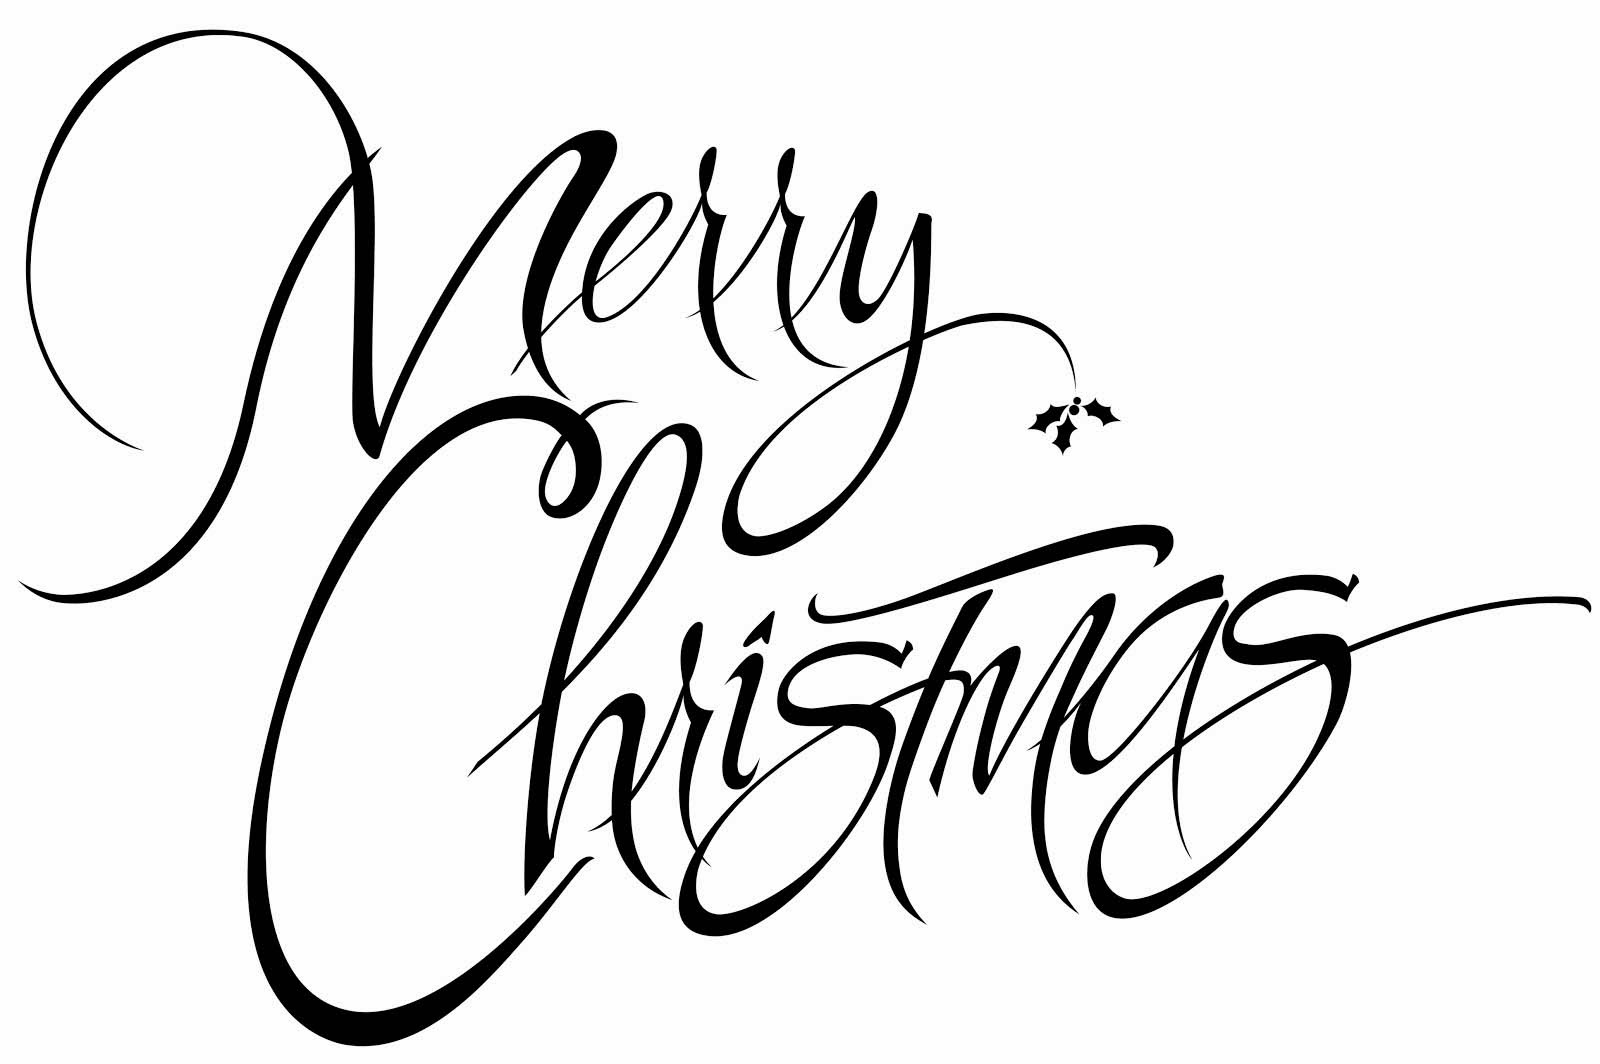 How To Draw Merry Christmas In Bubble Writing | Search ...